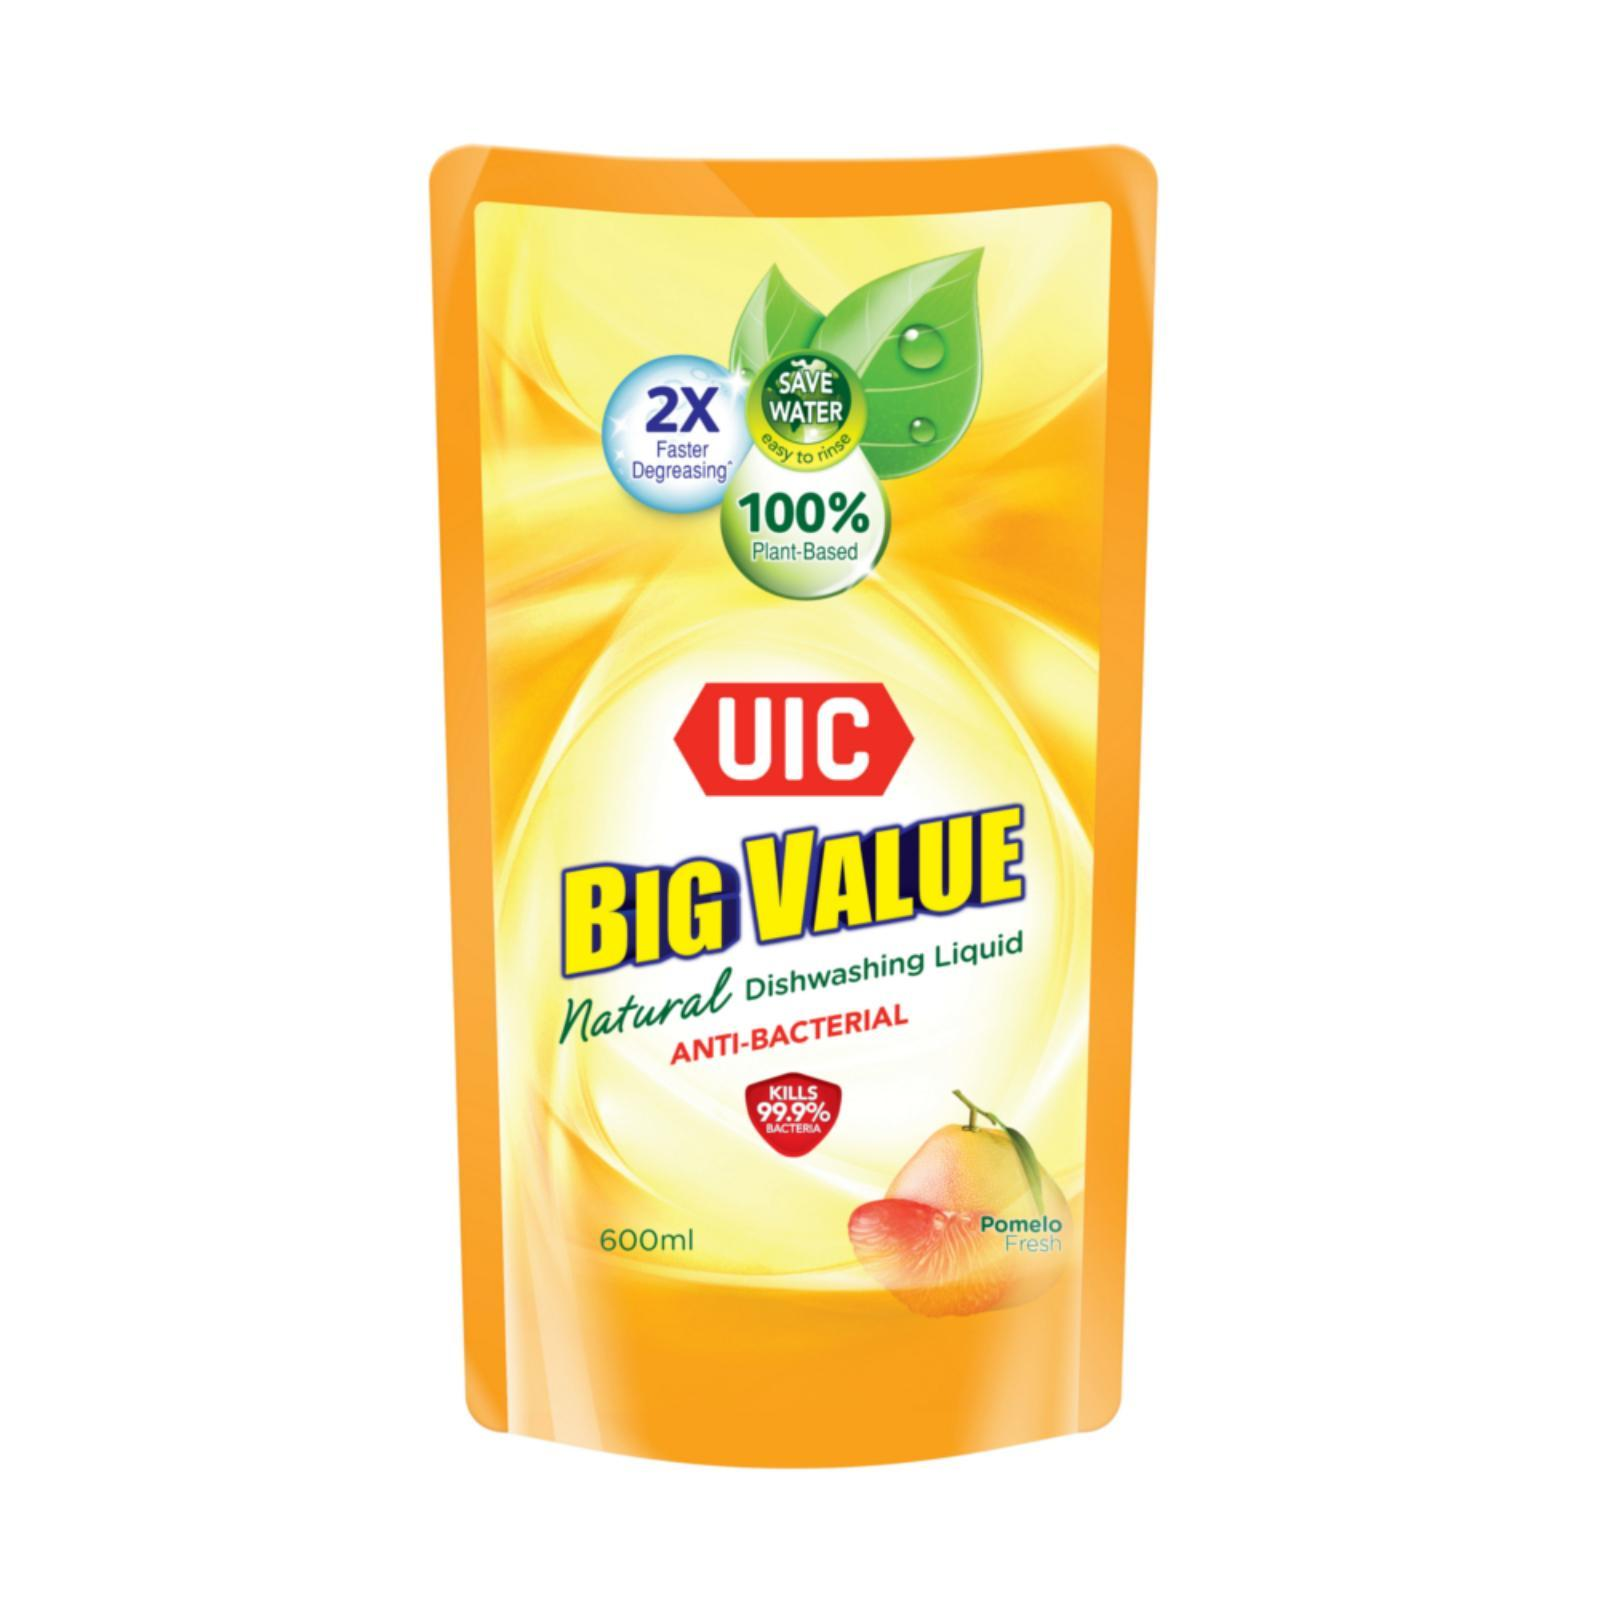 UIC Big Value Natural Anti-Bacterial Dishwashing Liquid Refill Pack